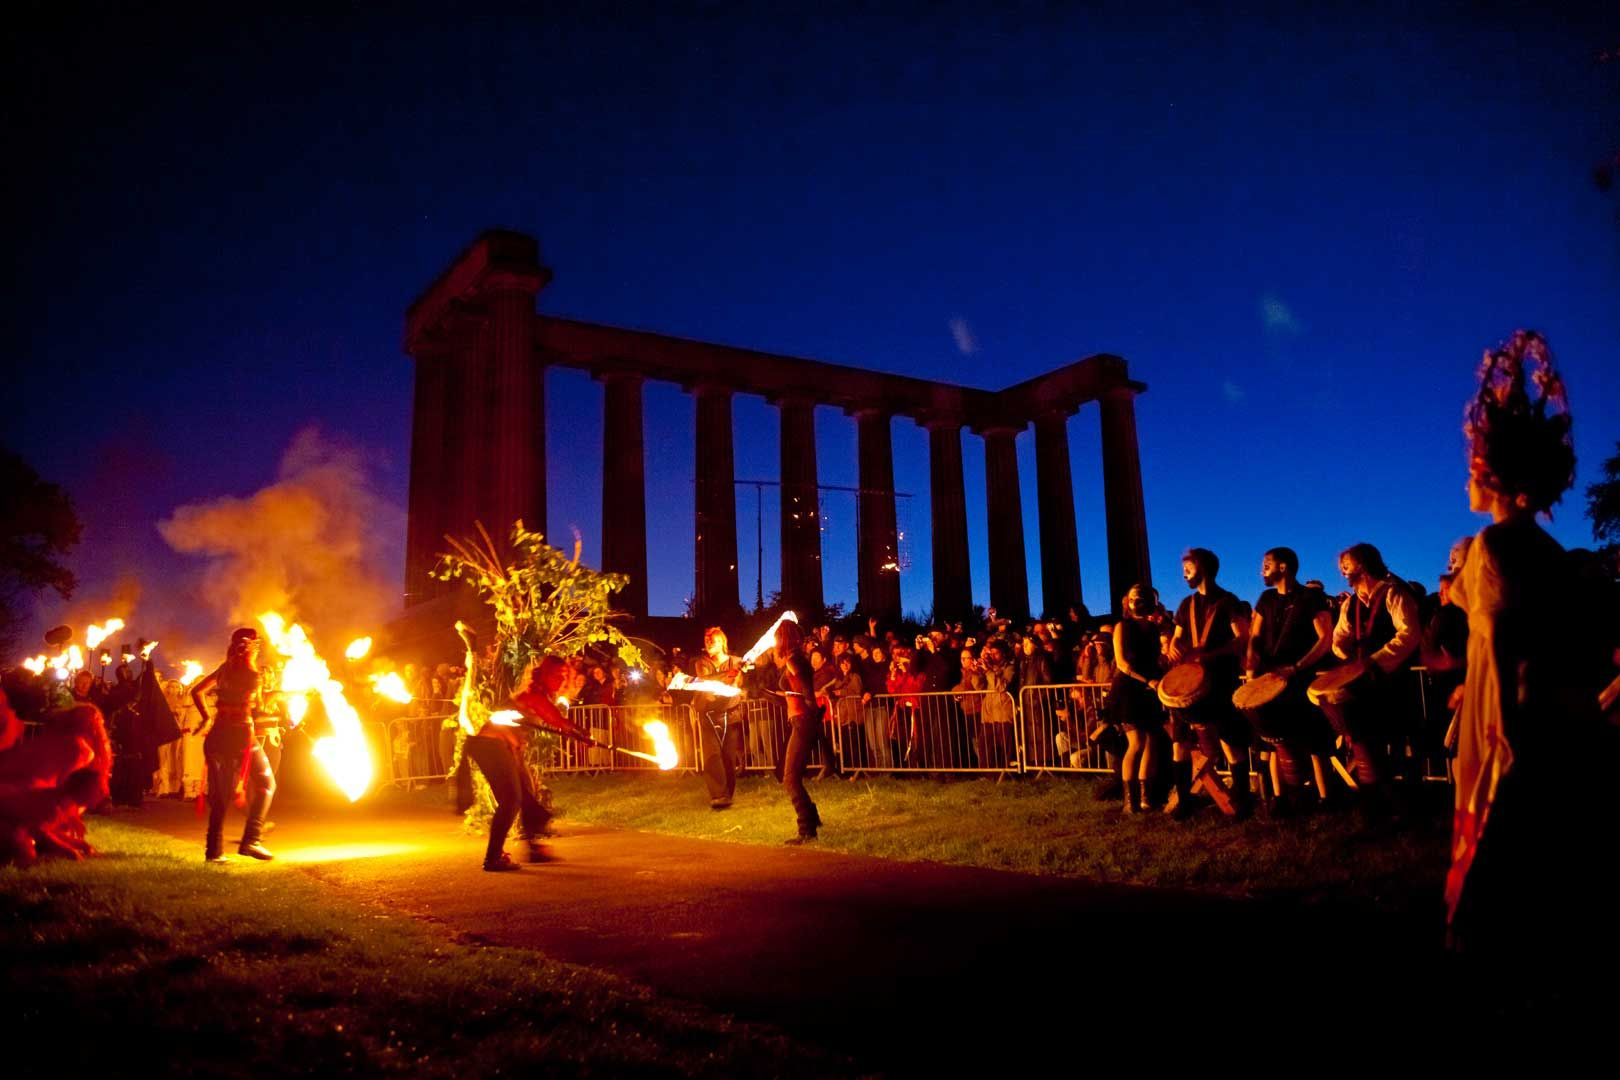 edinburgh beltane fire festival | Fire on the Hill | Fire